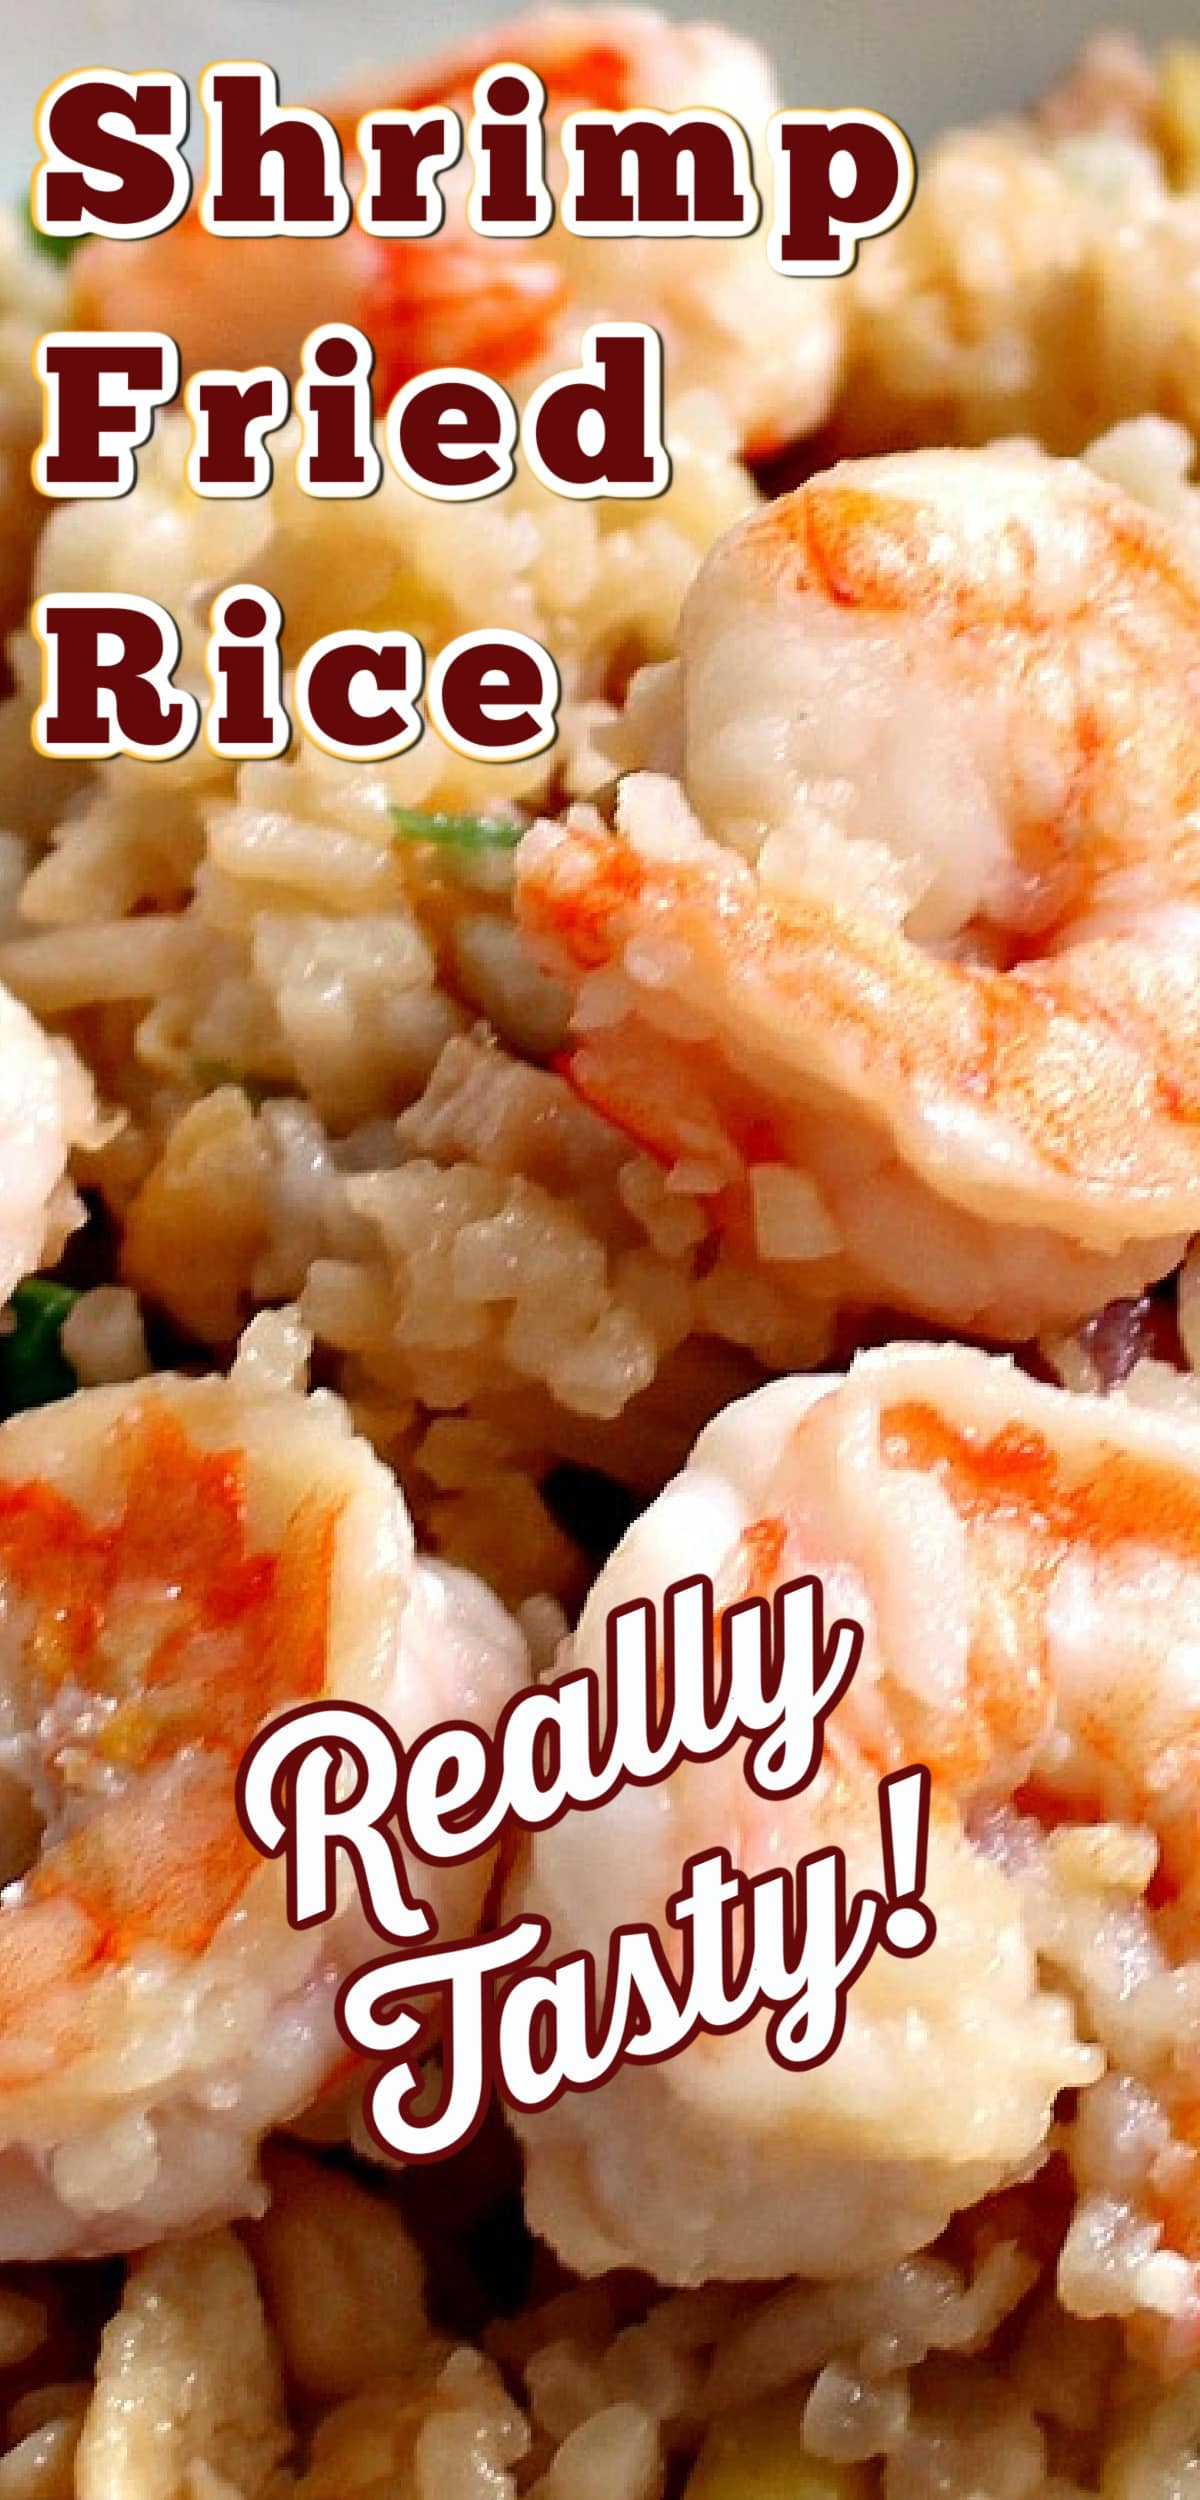 Garlic Shrimp Fried Rice! It's quick, easy and of course super tasty Asian starter or main dish!